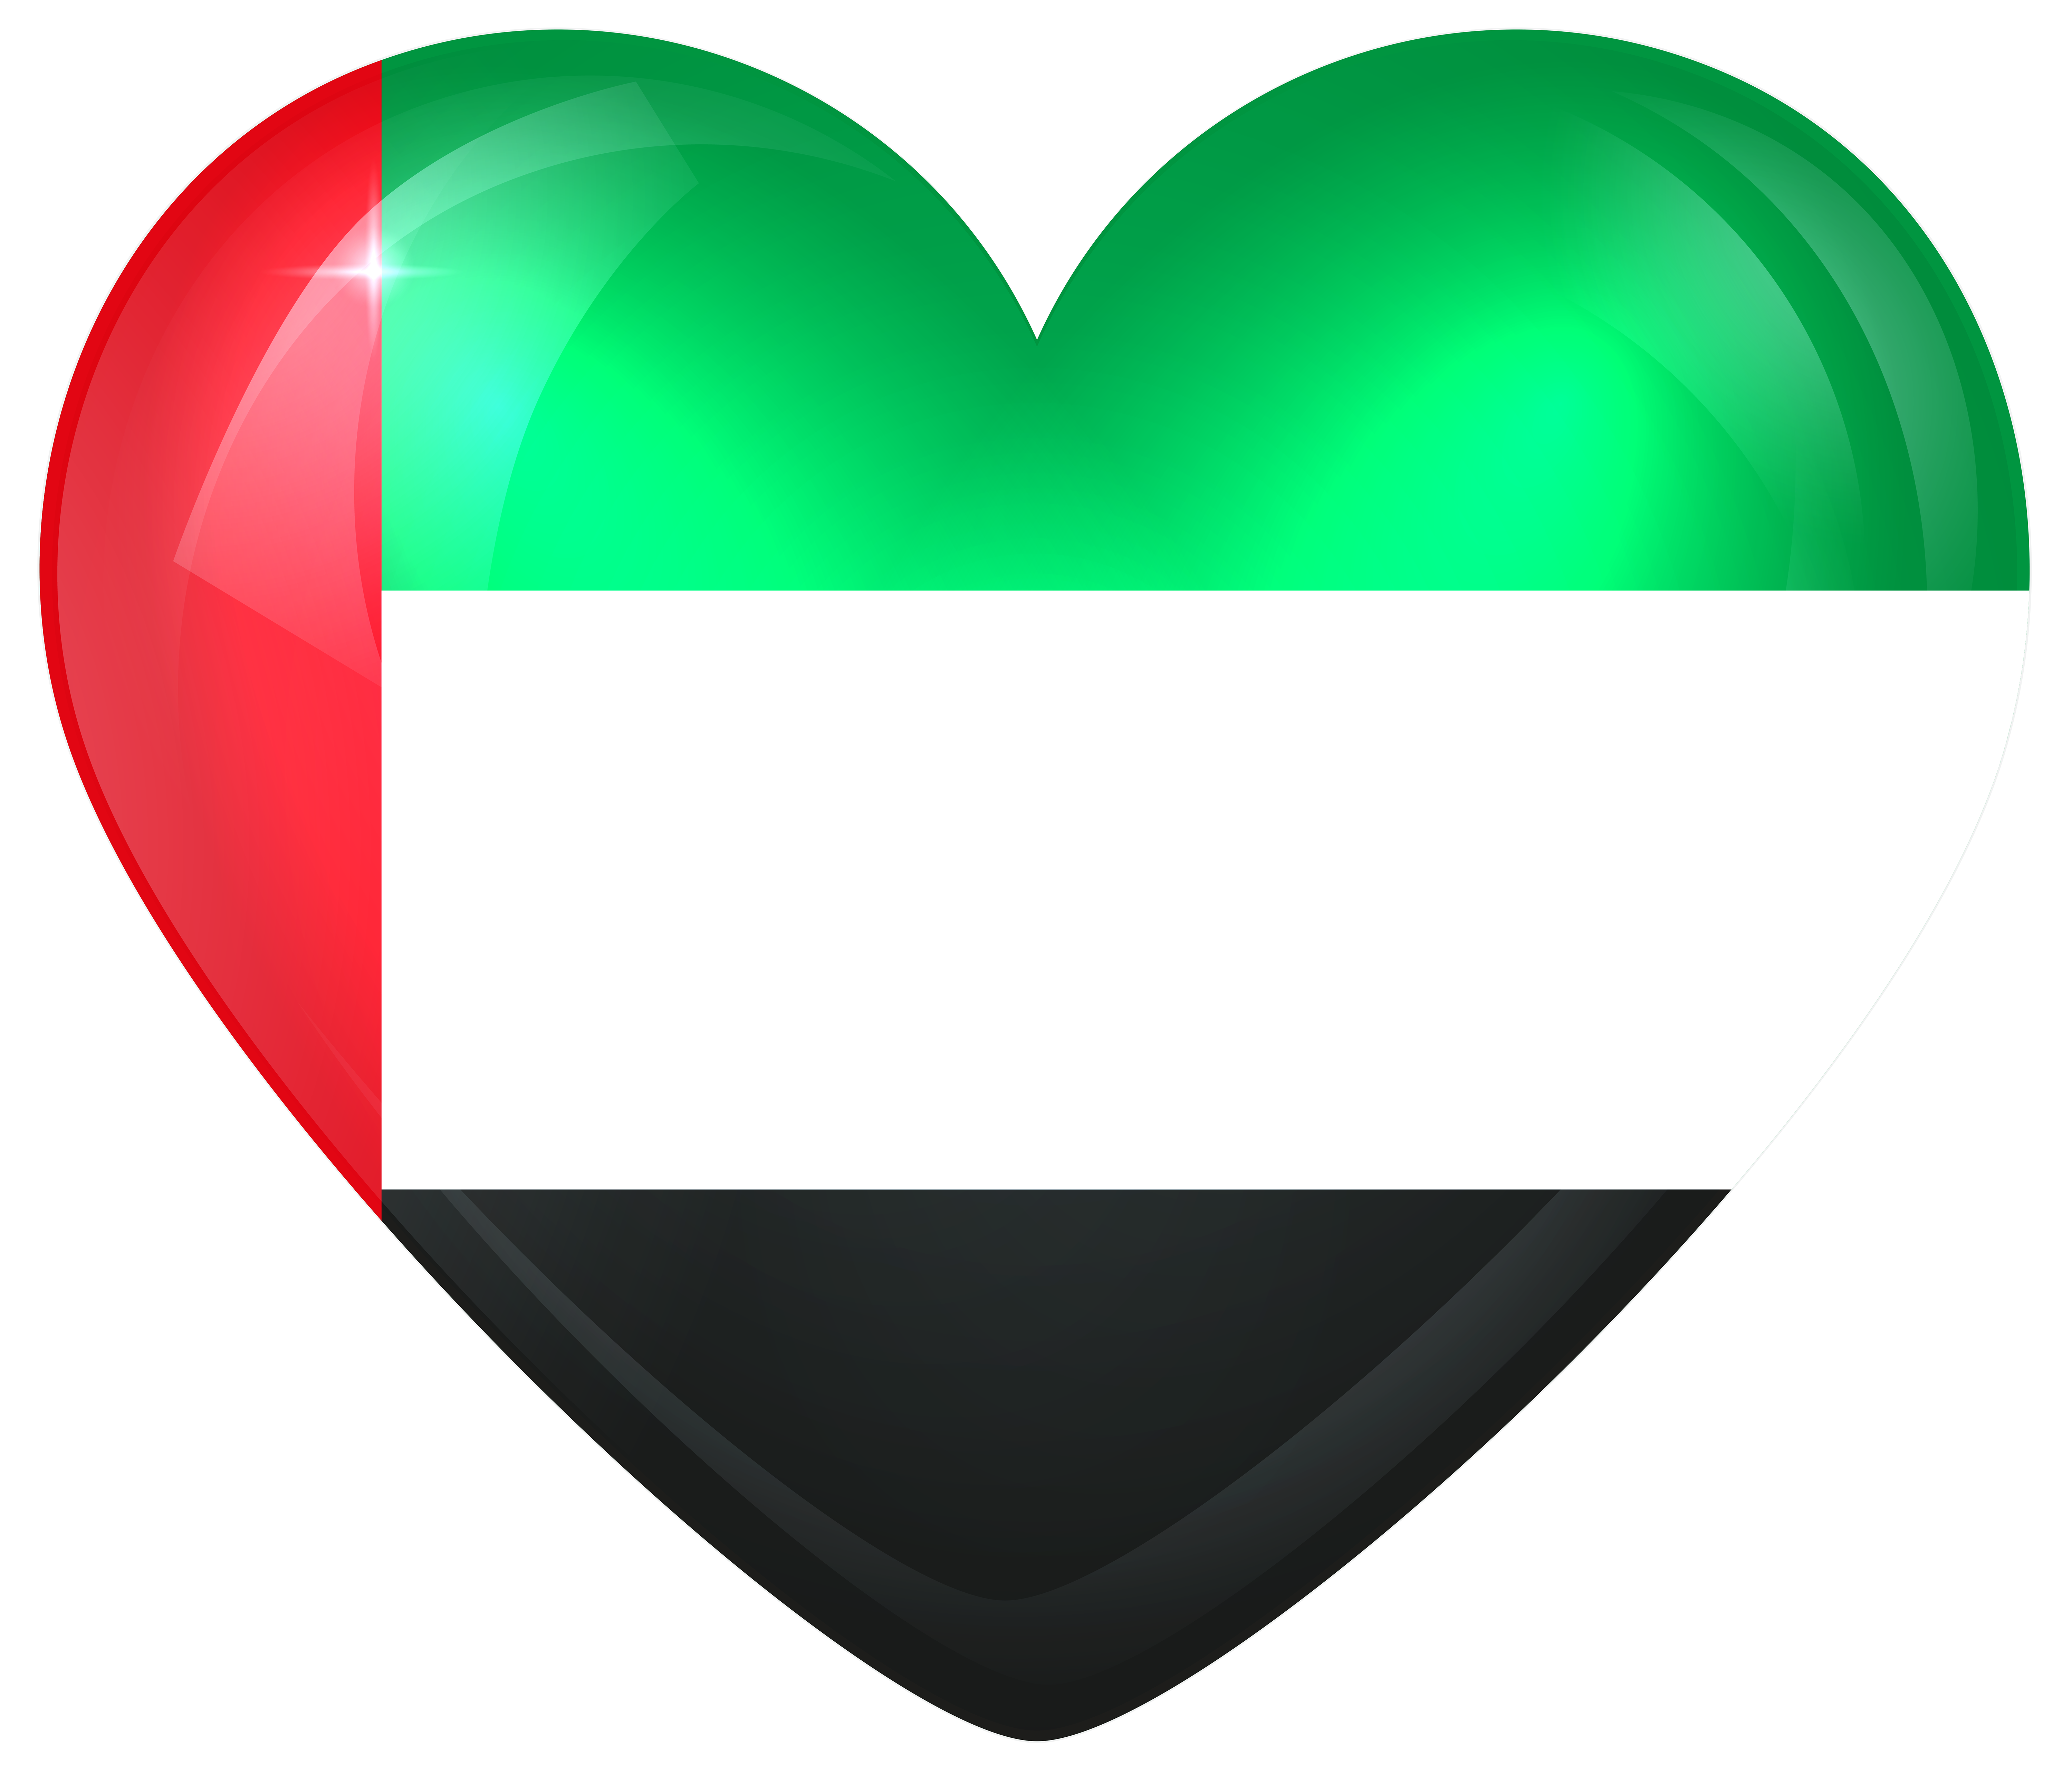 Hearts clipart flag. United arab emirates large